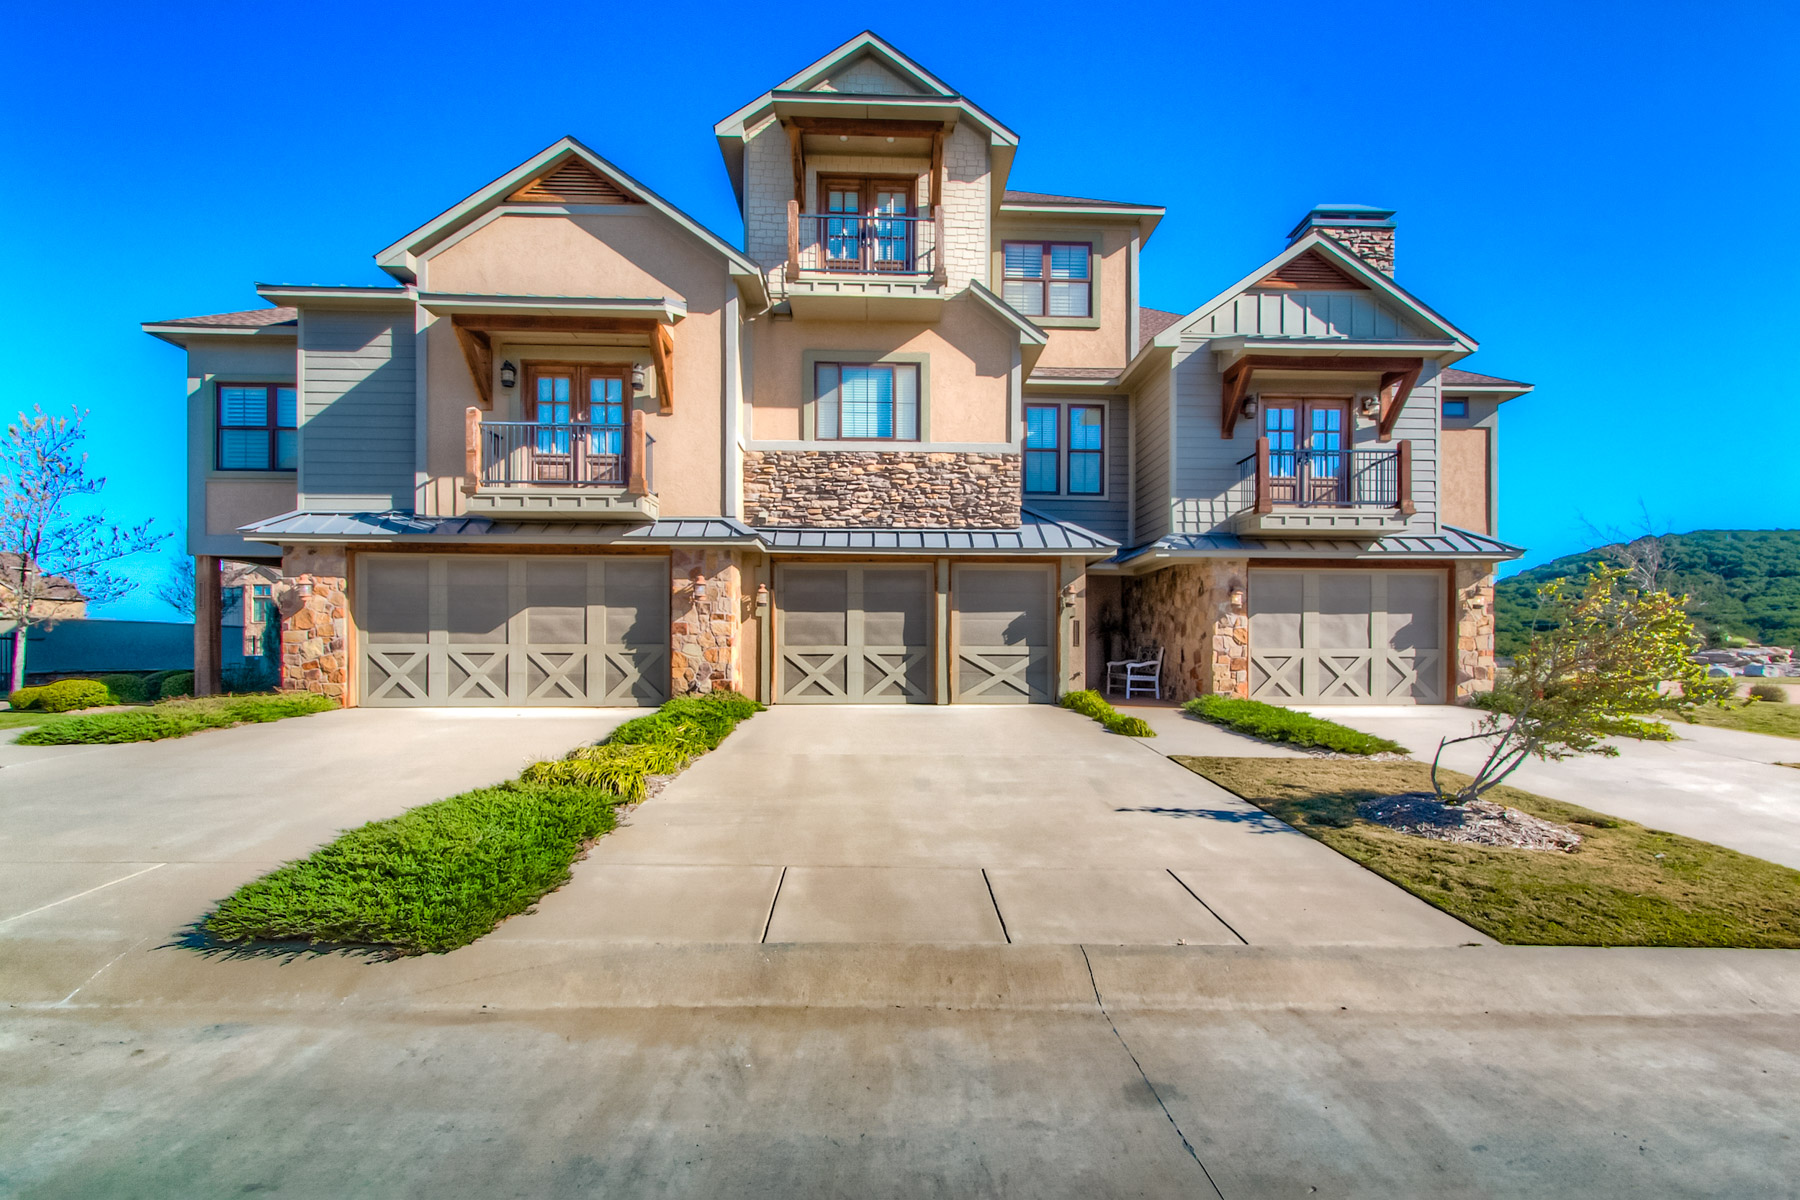 Single Family Home for Sale at Rustic, Villa, Hill Country Harbor 1014 Chapel Ridge Graford, Texas, 76449 United States